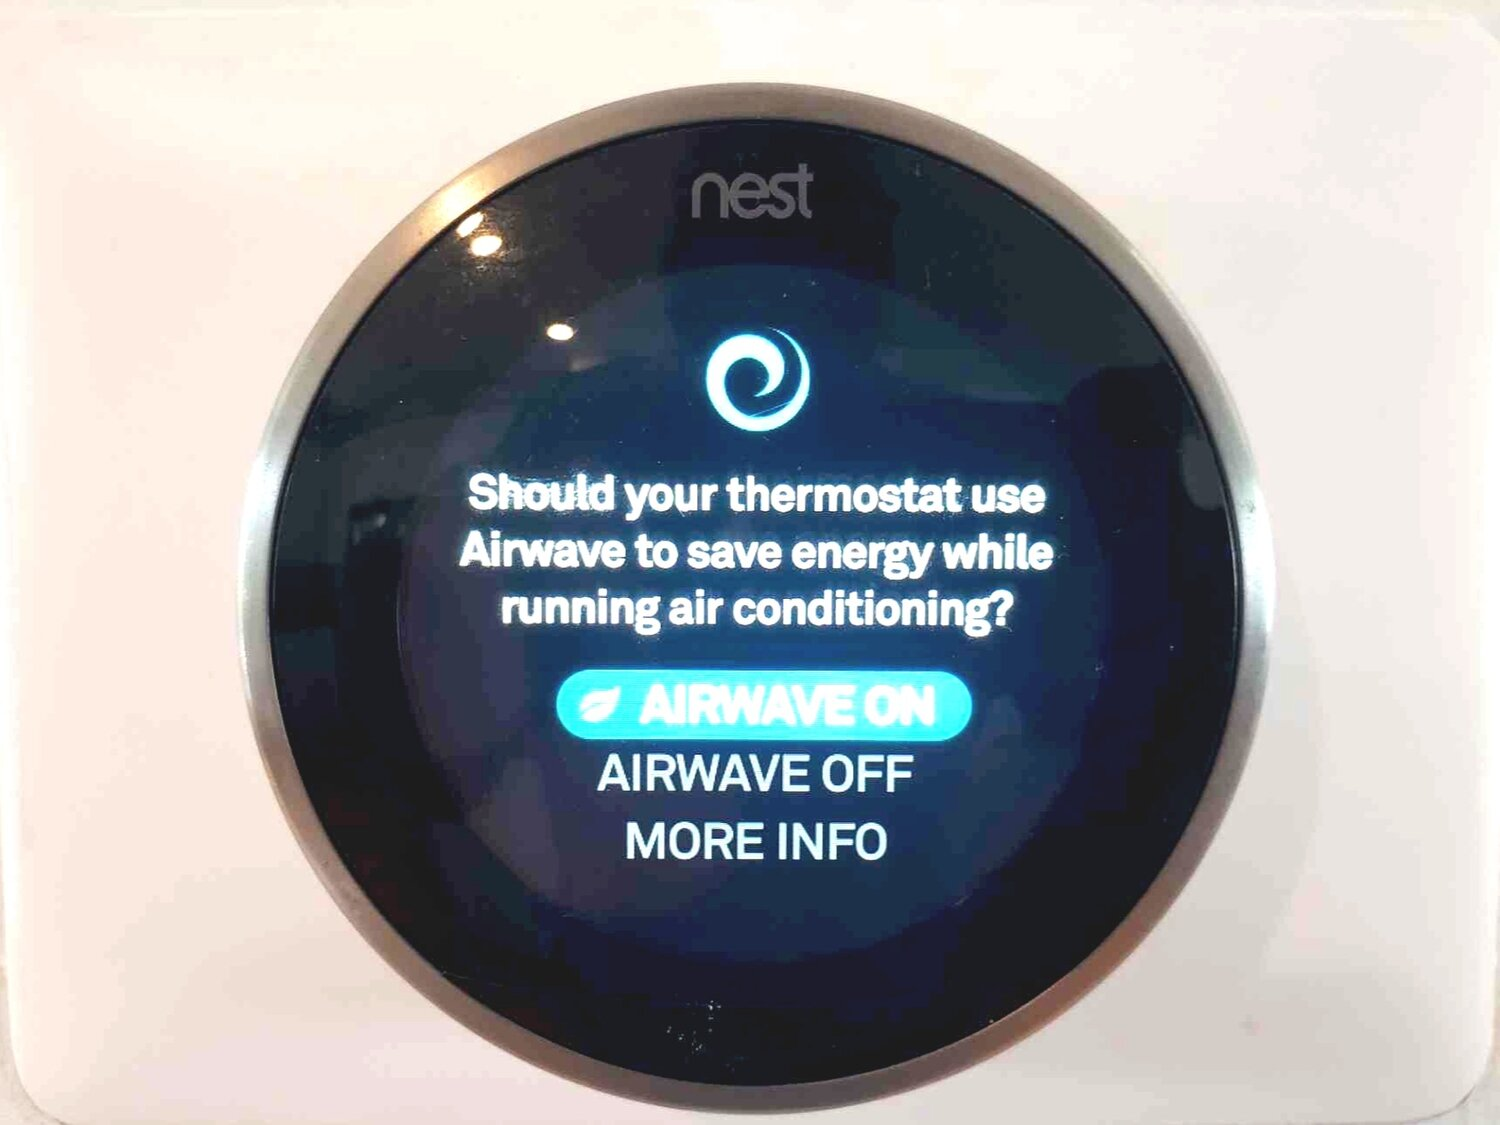 What Is Nest Airwave?